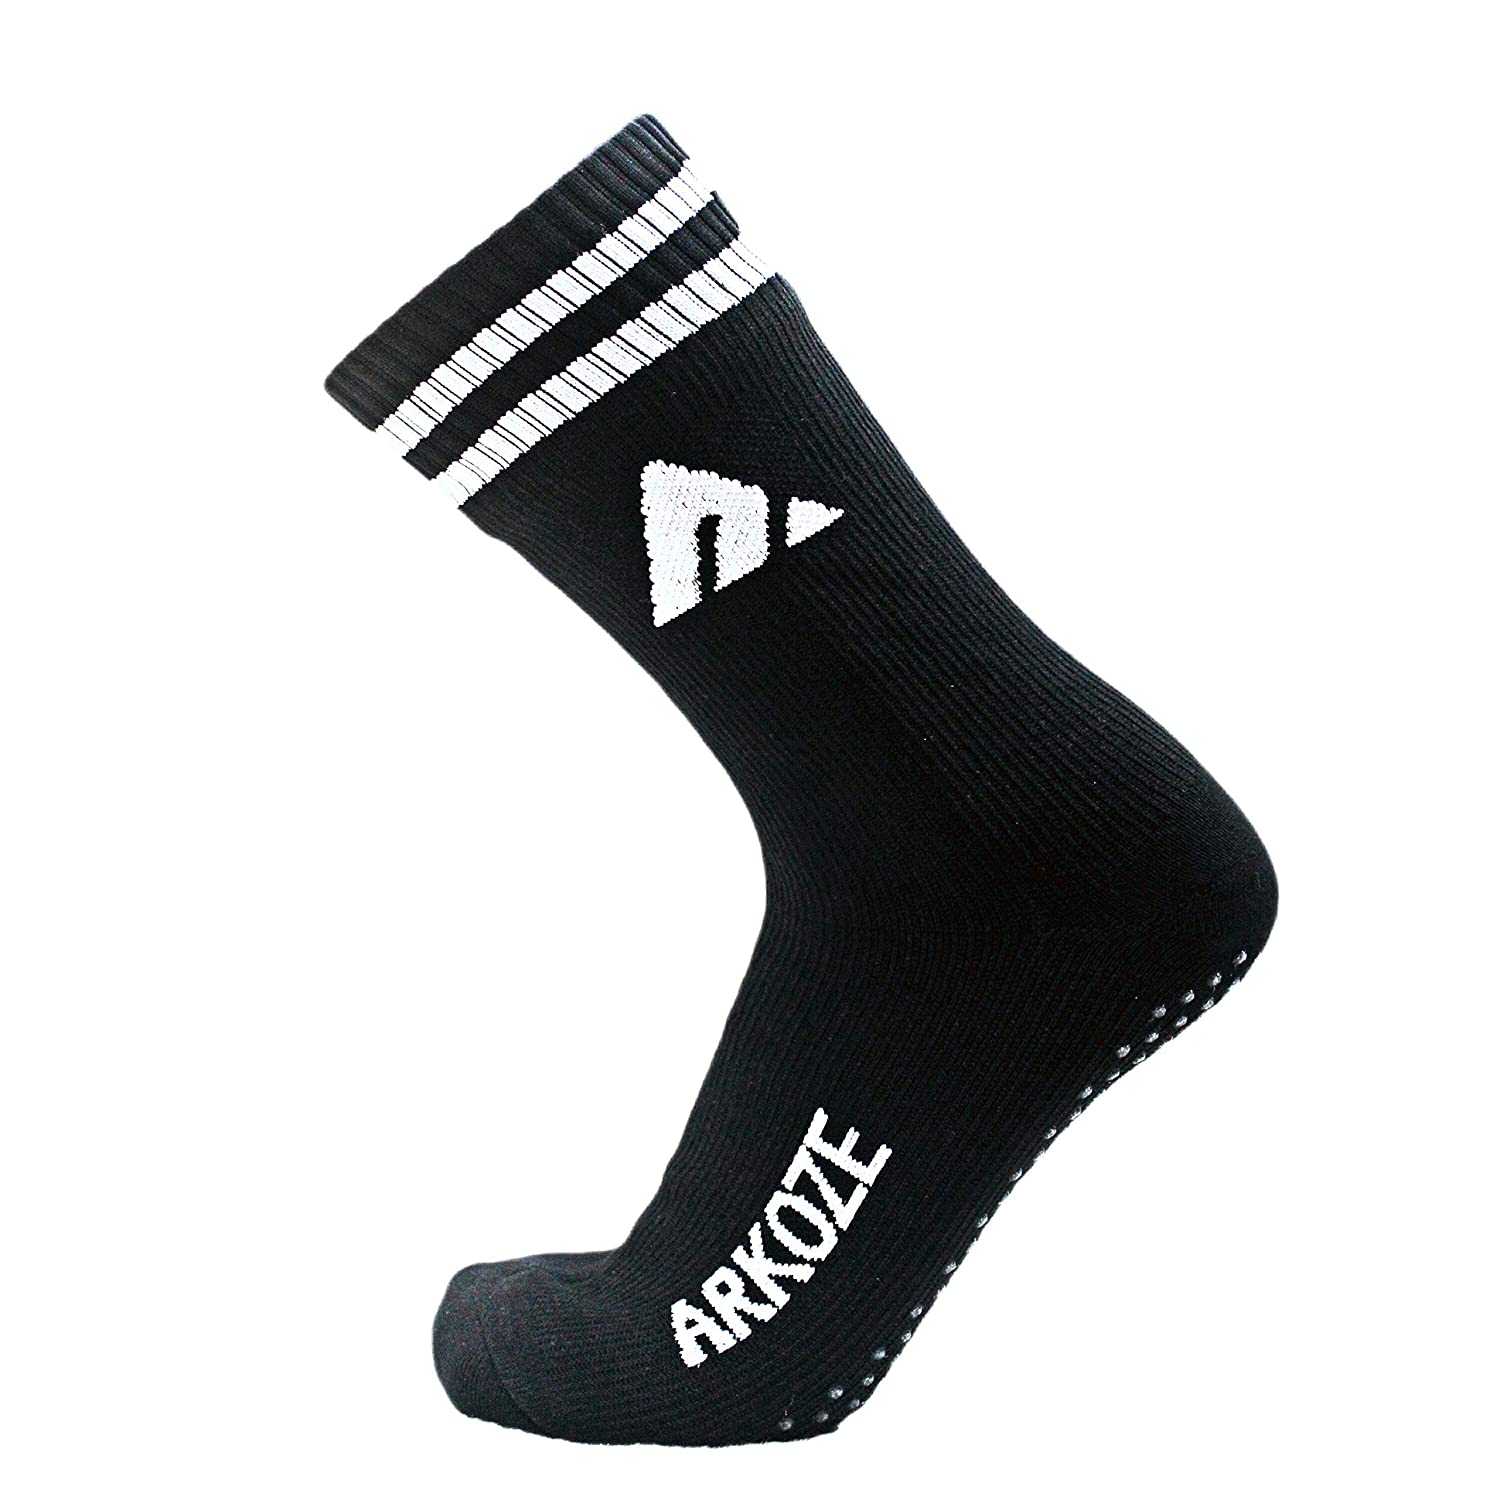 WATERPROOF COMPRESSION ANTISLIP Unisex Socks [SGS Certified] Windproof, Breathable for Hiking Trekking Most Outdoor Sports